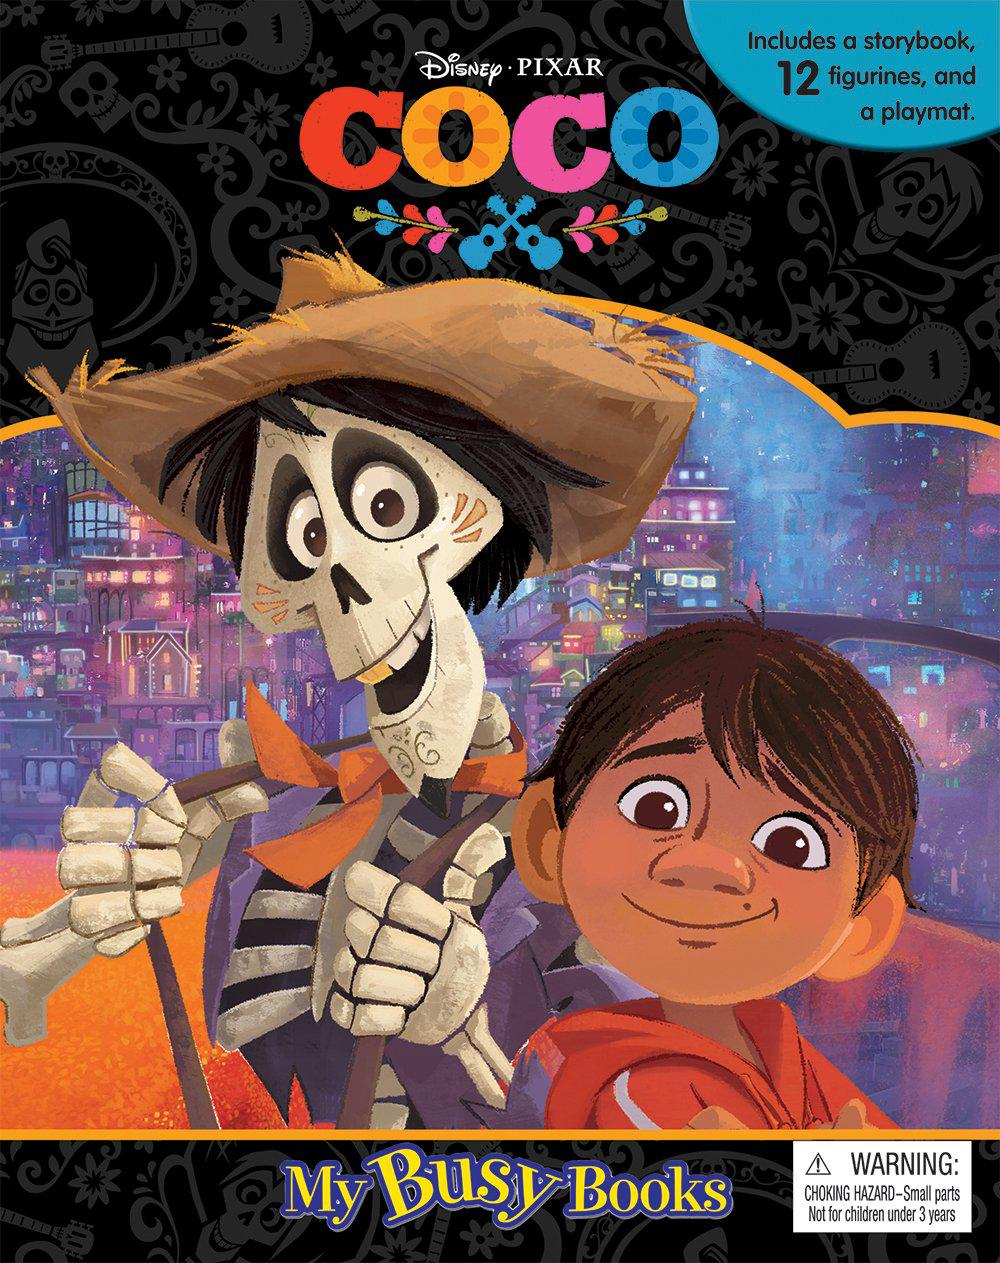 My Busy Book: Disney Pixar Coco